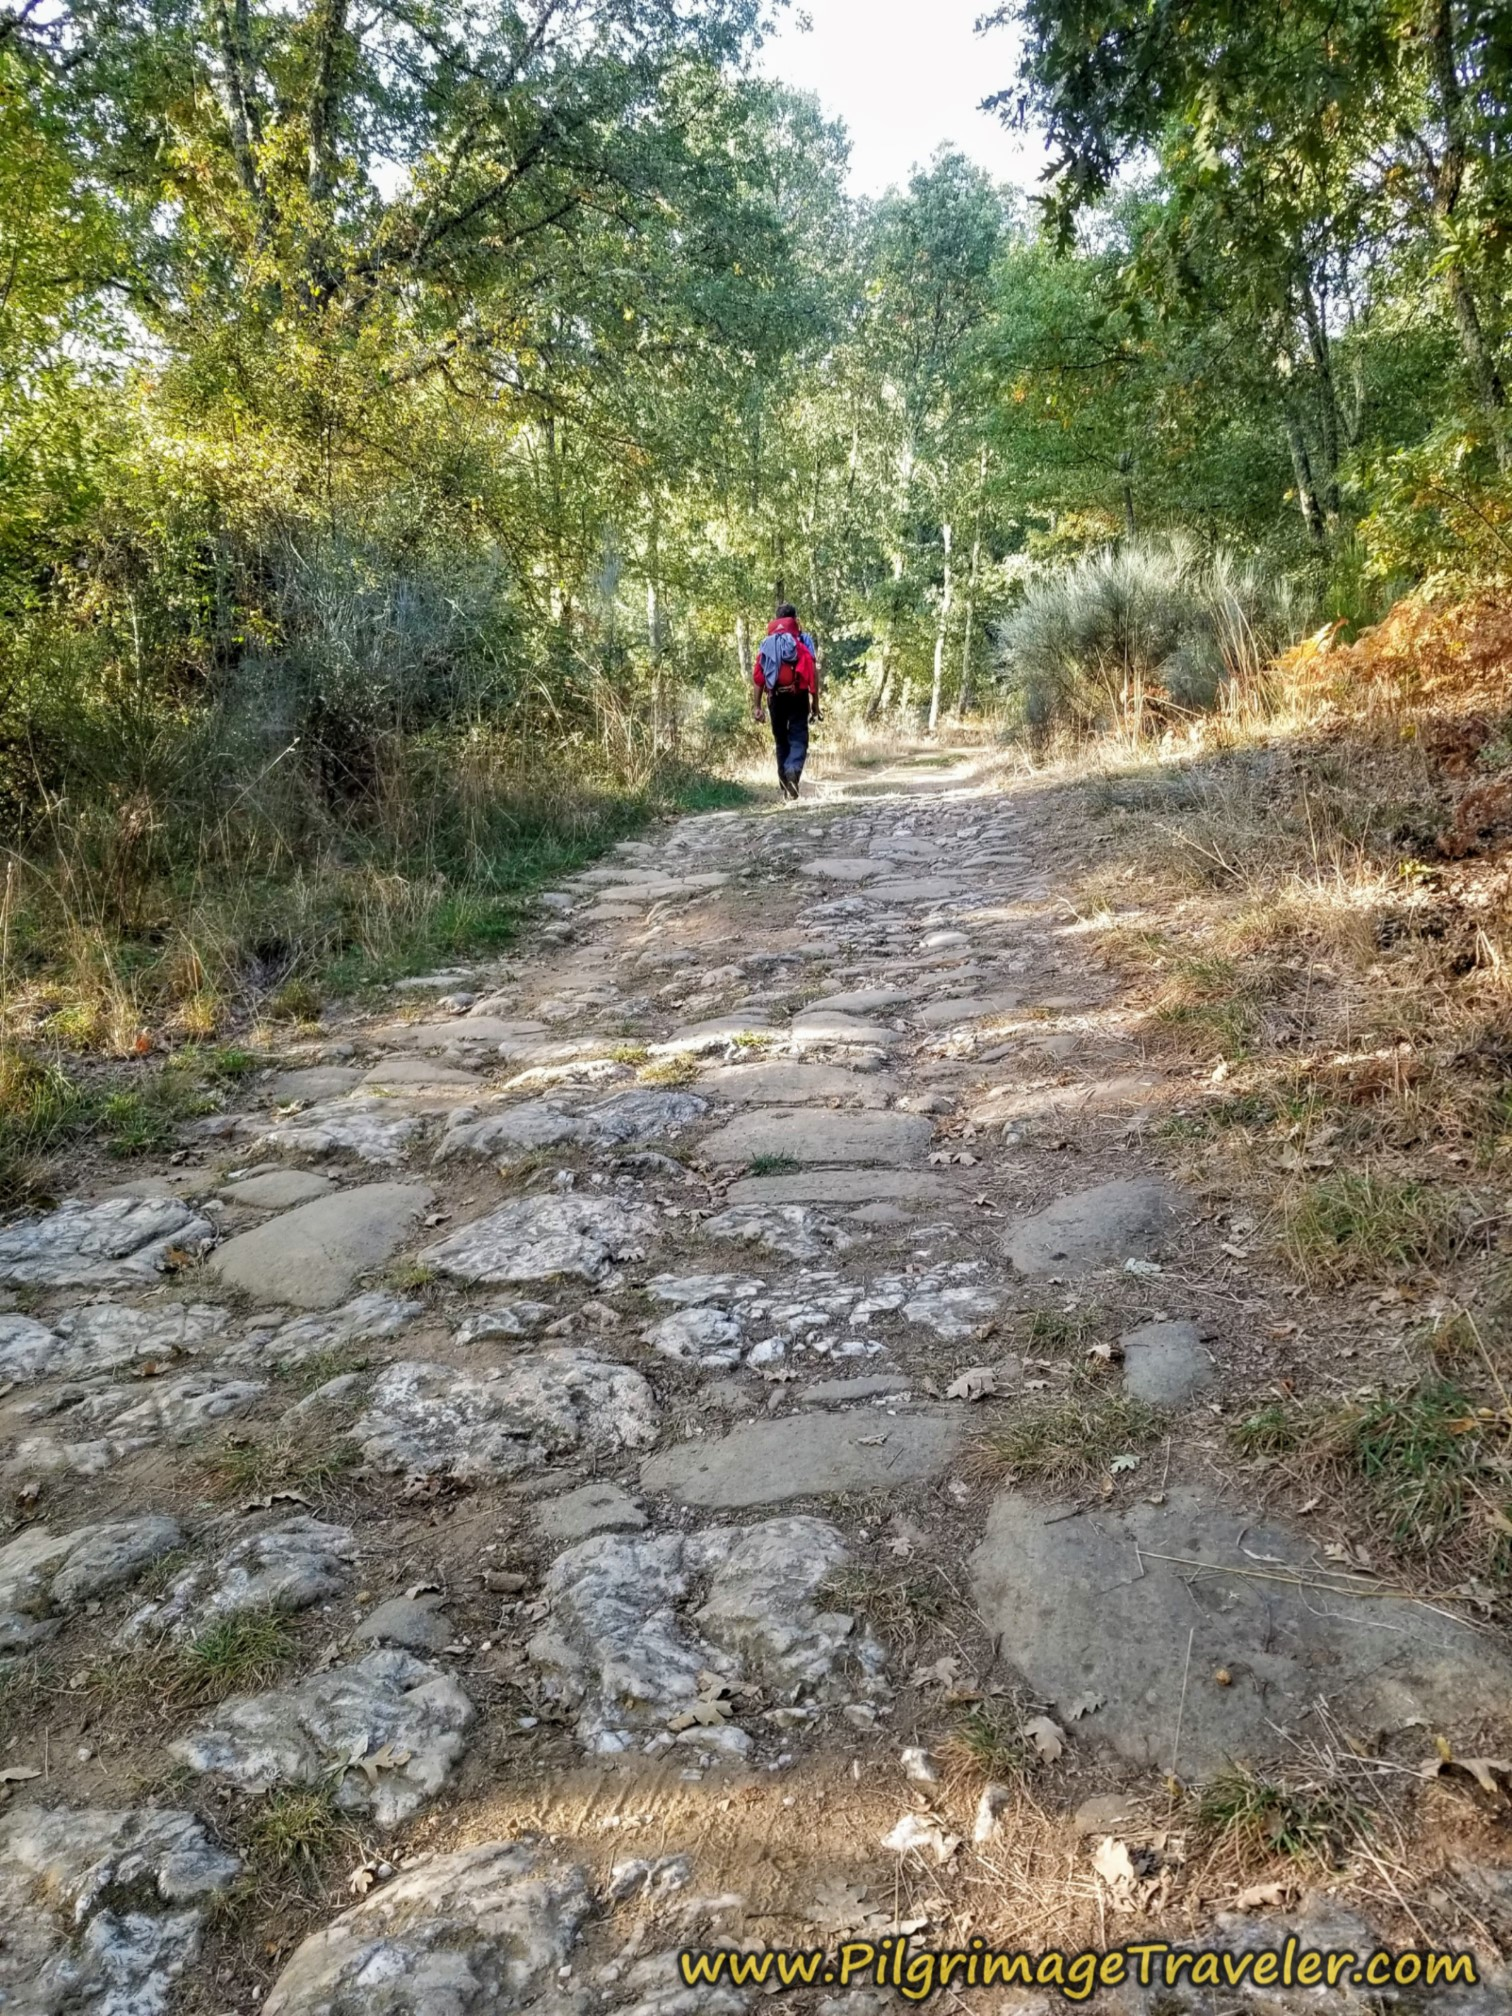 Join Roman Road on the Camino Sanabrés from Entrepeñas to Puebla de Sanabria